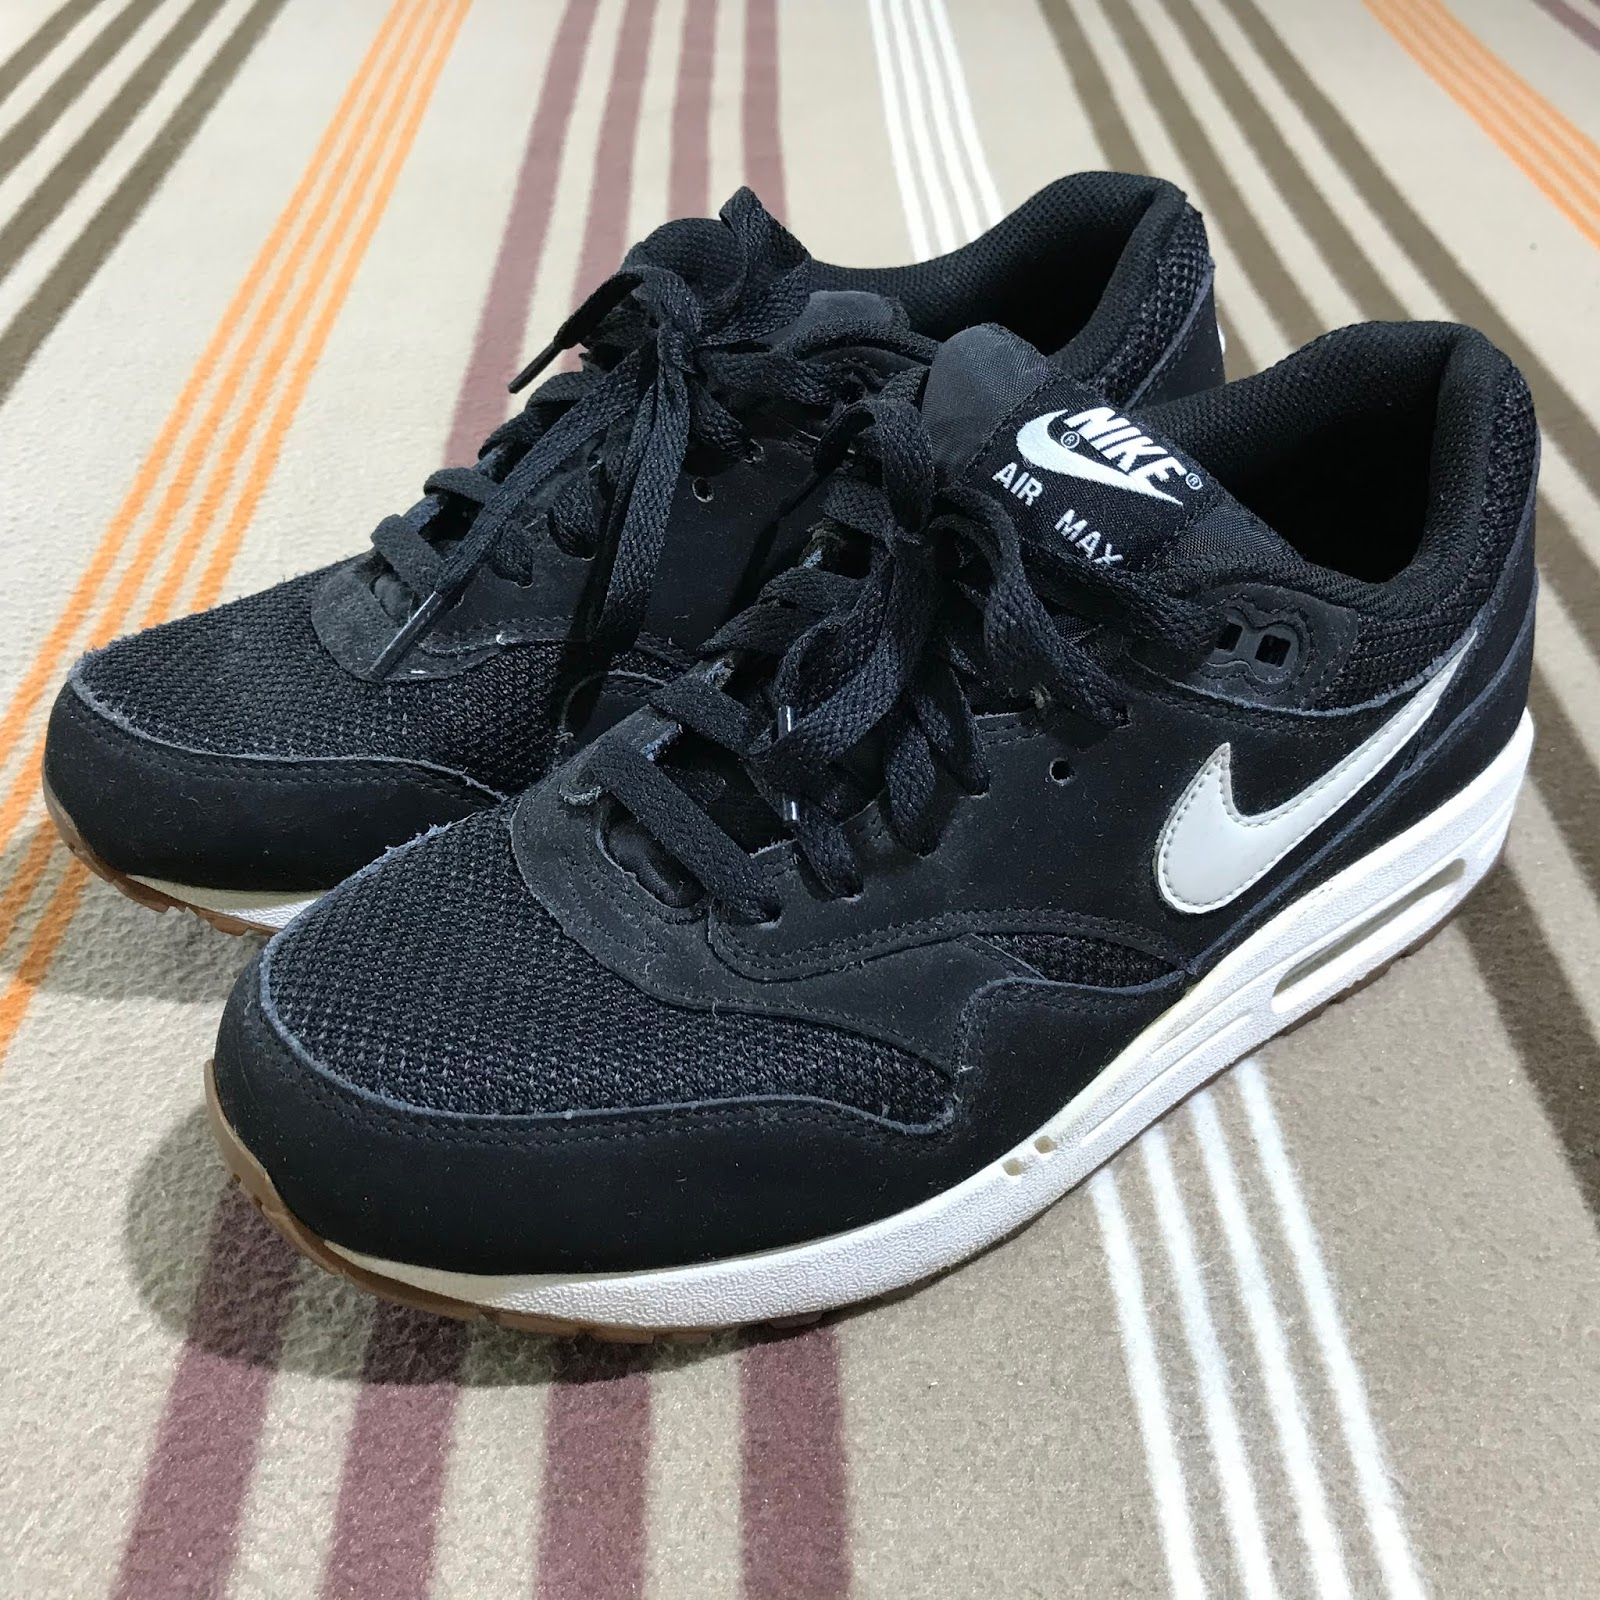 in stock 6855e 9e85e ... ireland nike air max 1 essential. brand nike air max 1 essential black  light bone